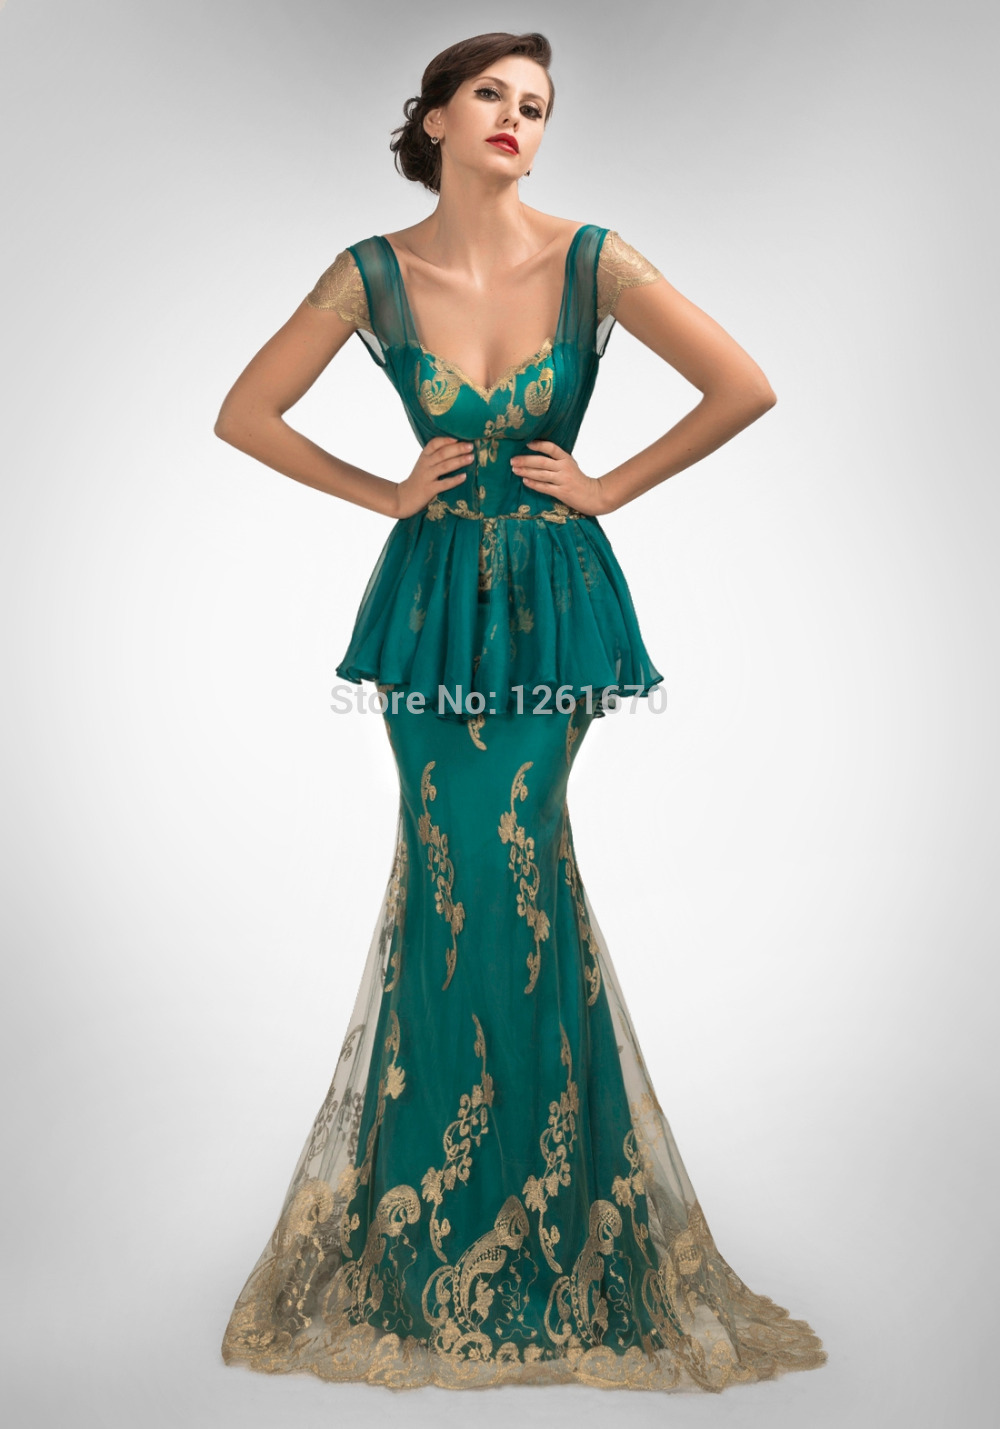 Compare Prices on Modest Formal Dress Patterns- Online Shopping ...